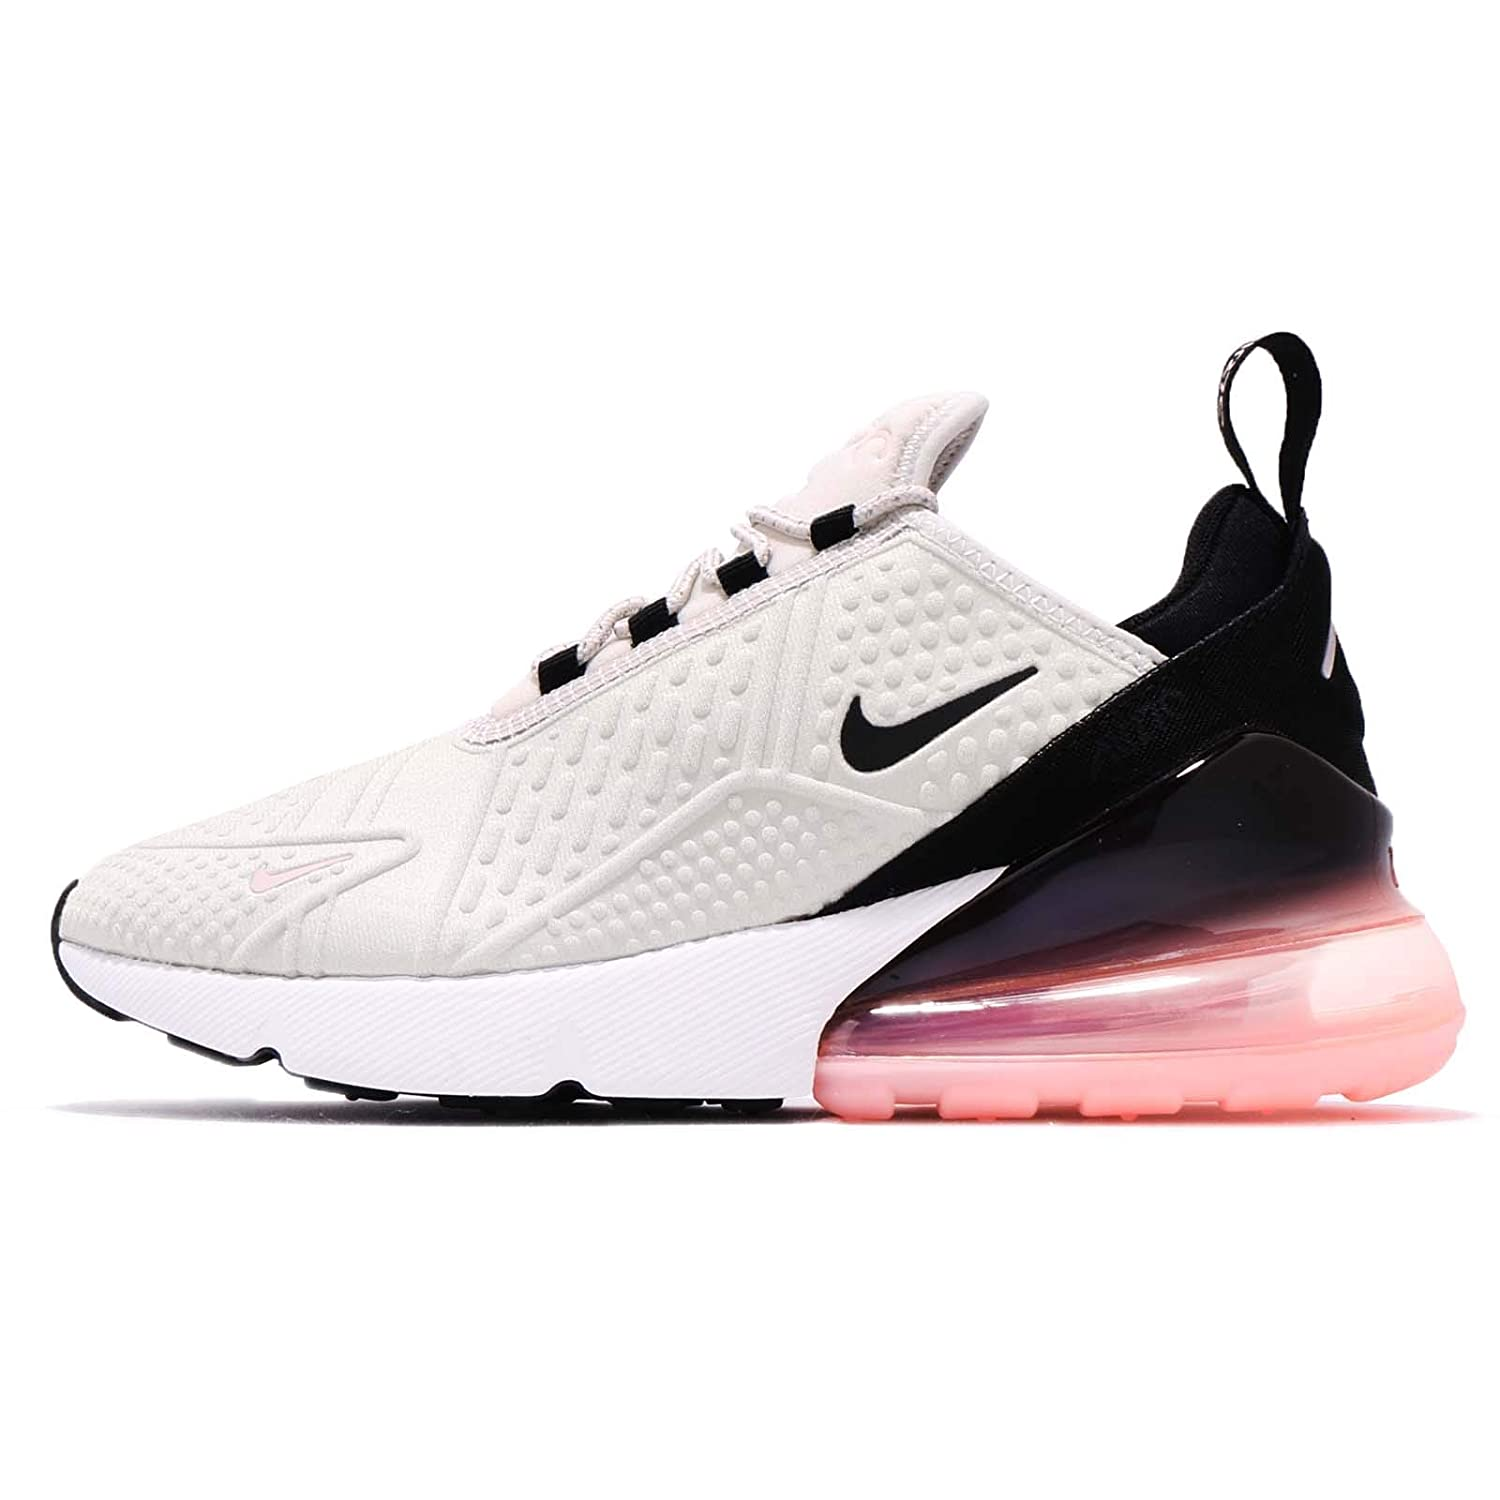 sneakers for cheap 24b3a a3936 Nike Women's WMNS Air Max 270 SE, Light Bone/Black-Storm Pink, 7 US